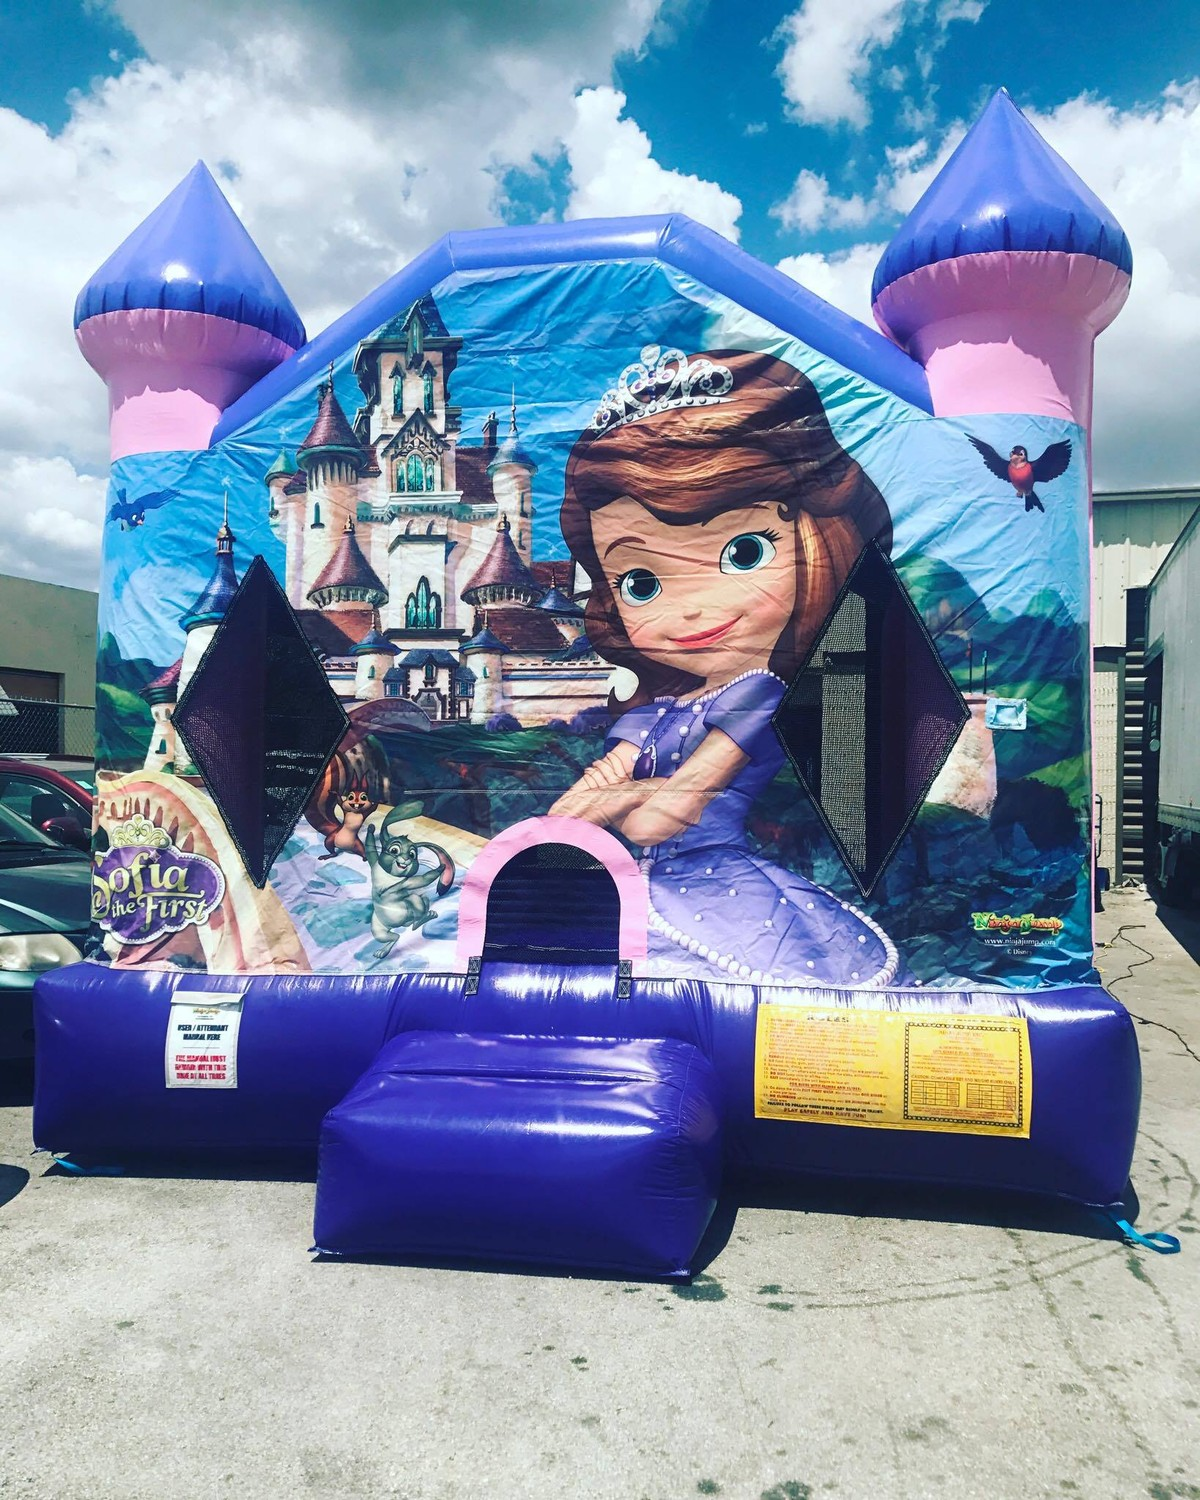 Sofia the first Bounce house Full Face